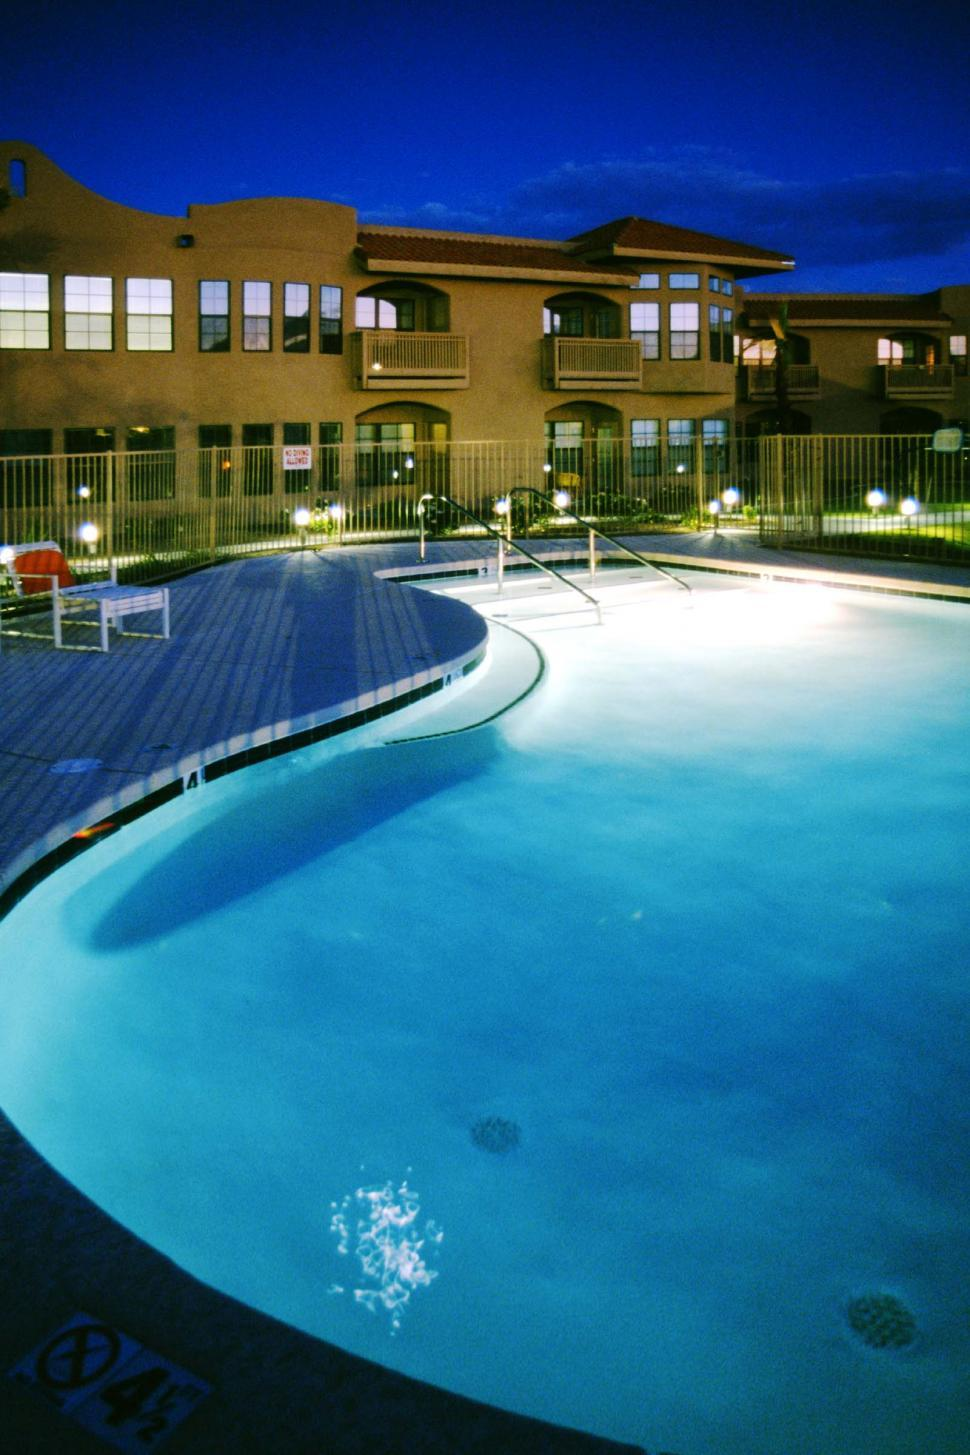 Download Free Stock Photo of Pool and Apartment Complex